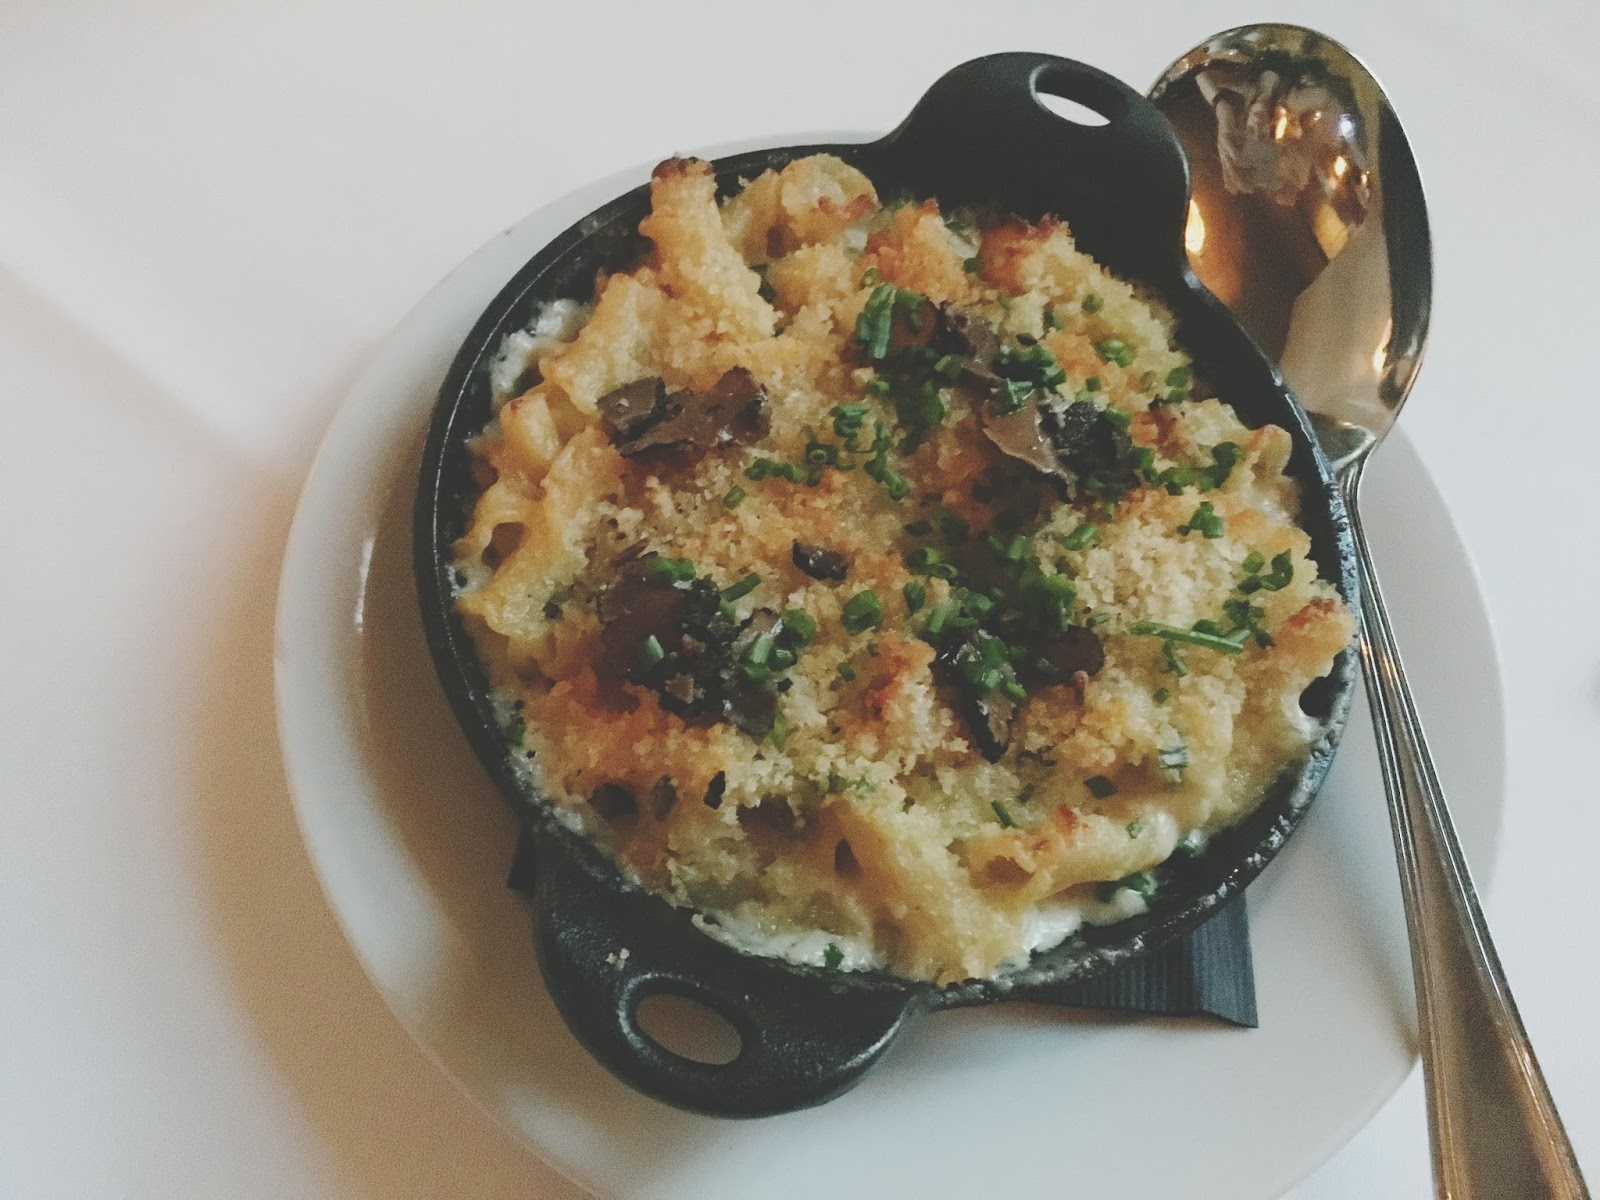 mac and cheese at Eddie V's - A restaurant in Houston, Texas